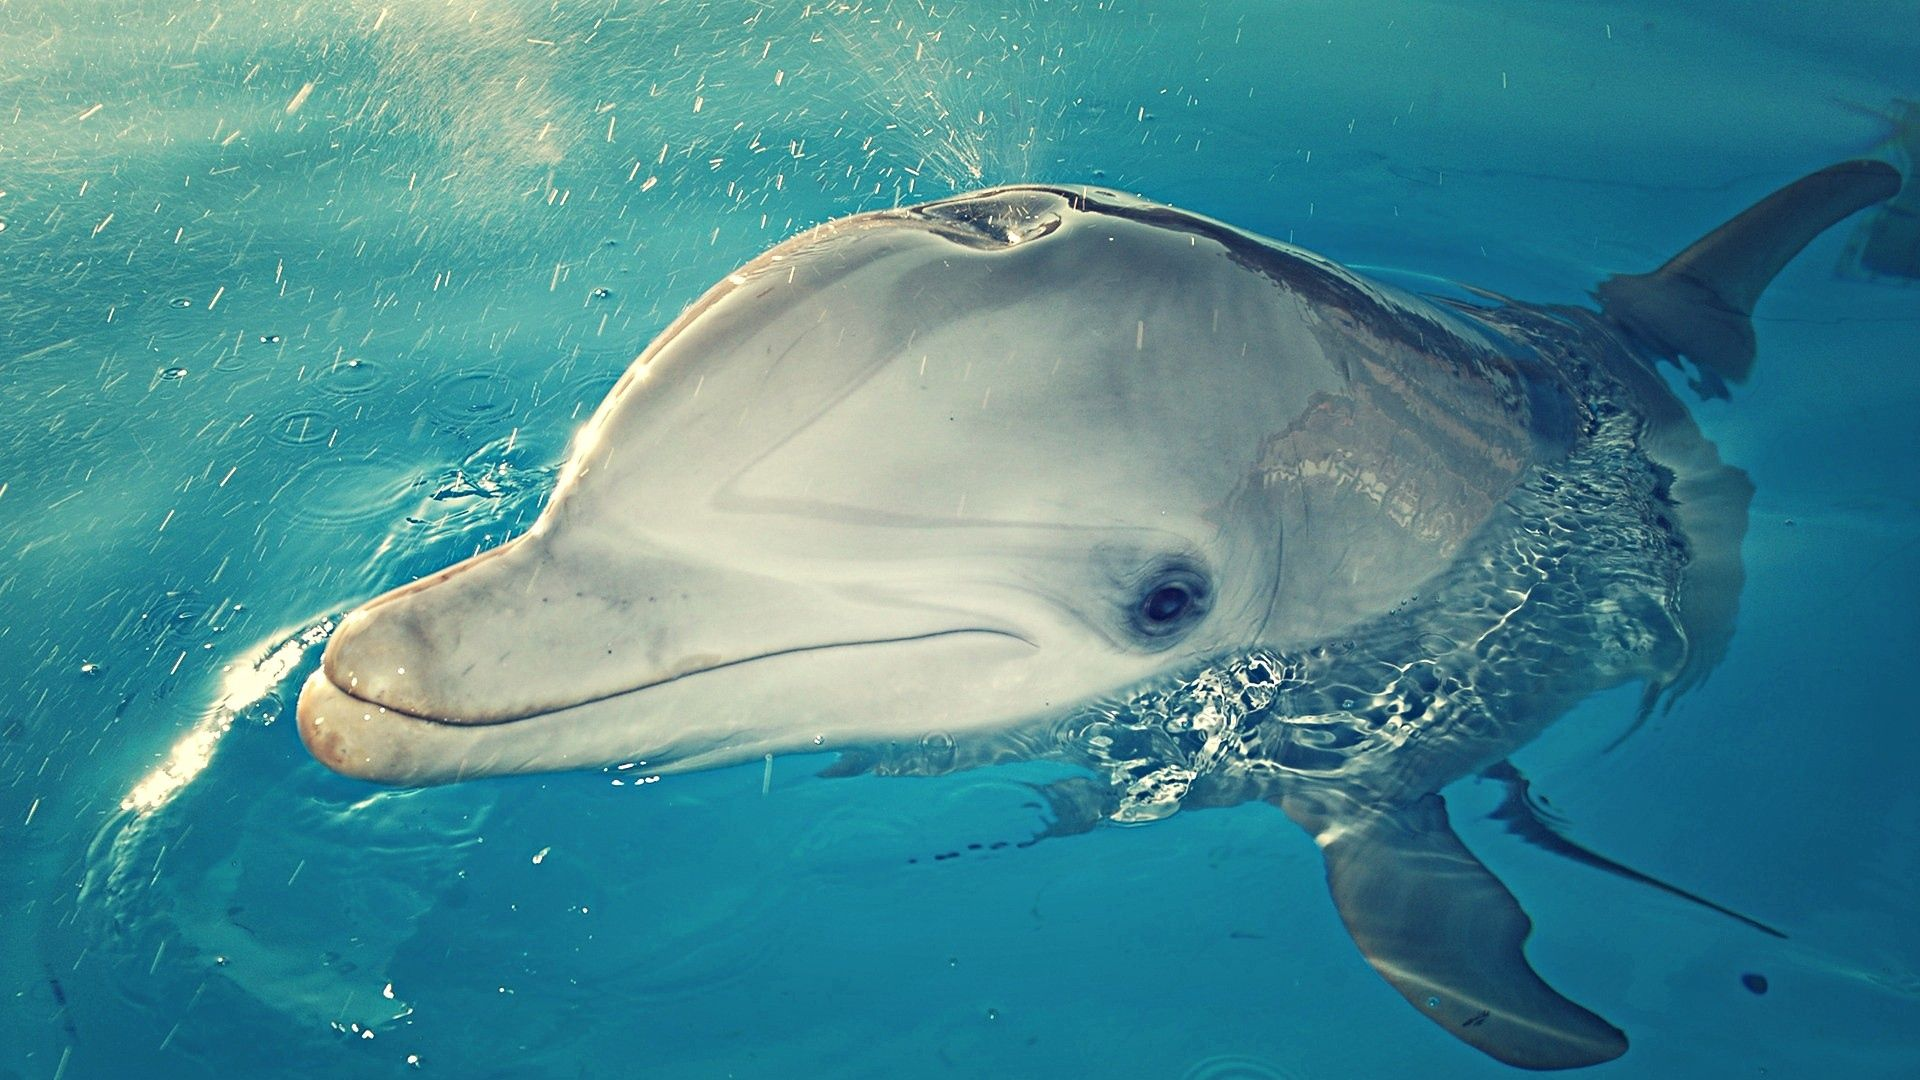 Download Wallpaper 1920x1080 Dolphin Head Spray Water Full Hd 1080p Hd Background